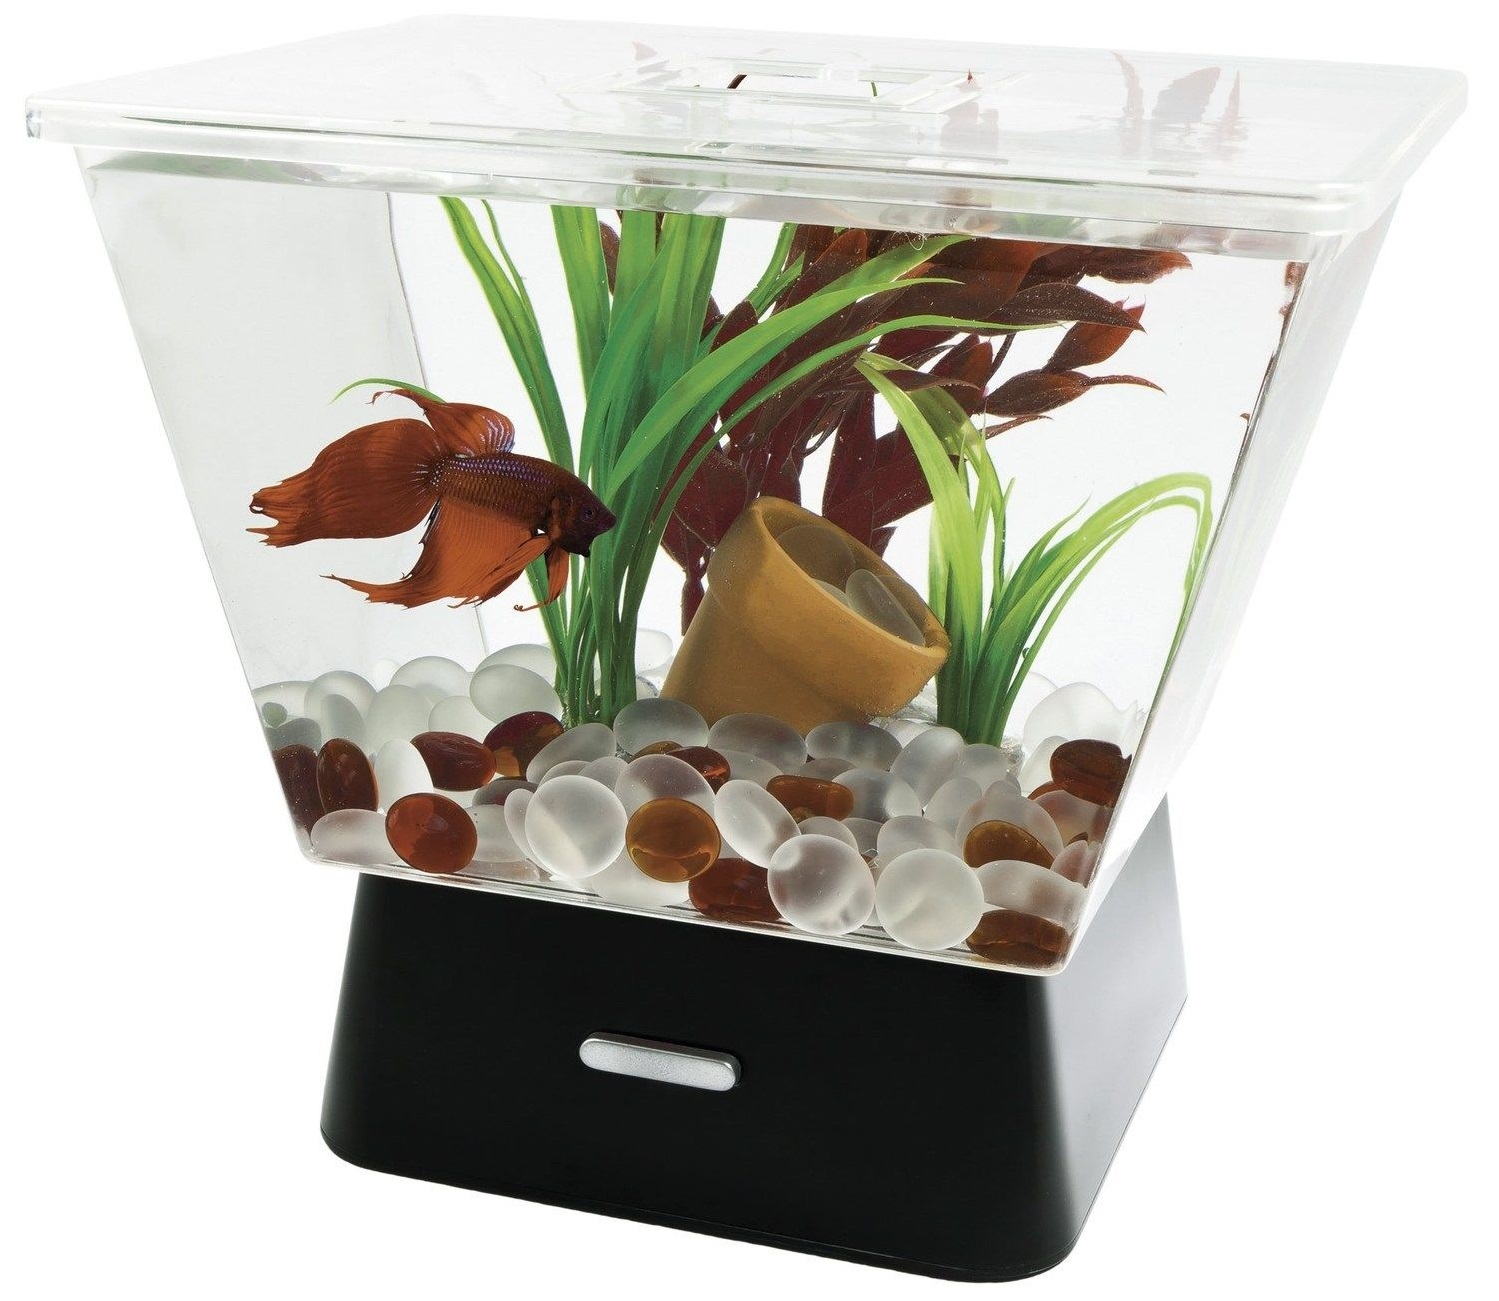 Model dan harga aquarium mini cara budidaya ikan for Betta fish tanks amazon